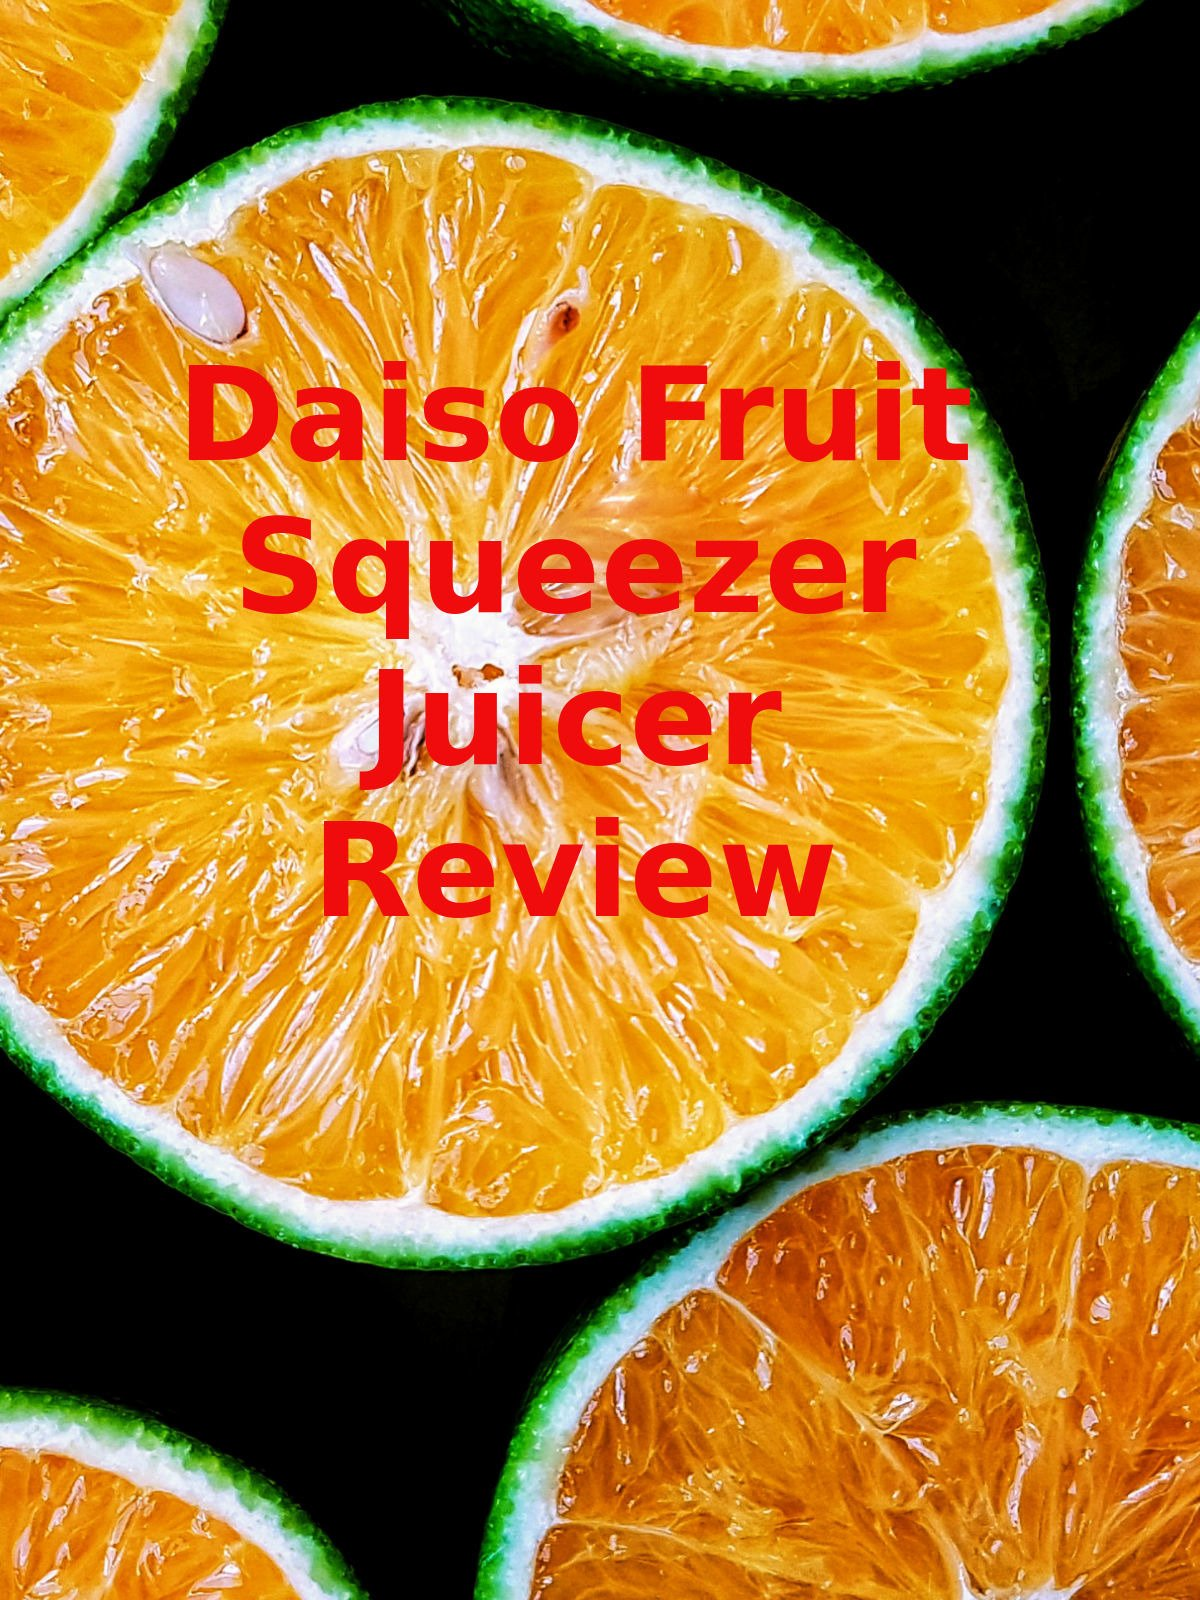 Review: Daiso Fruit Squeezer Juicer Review